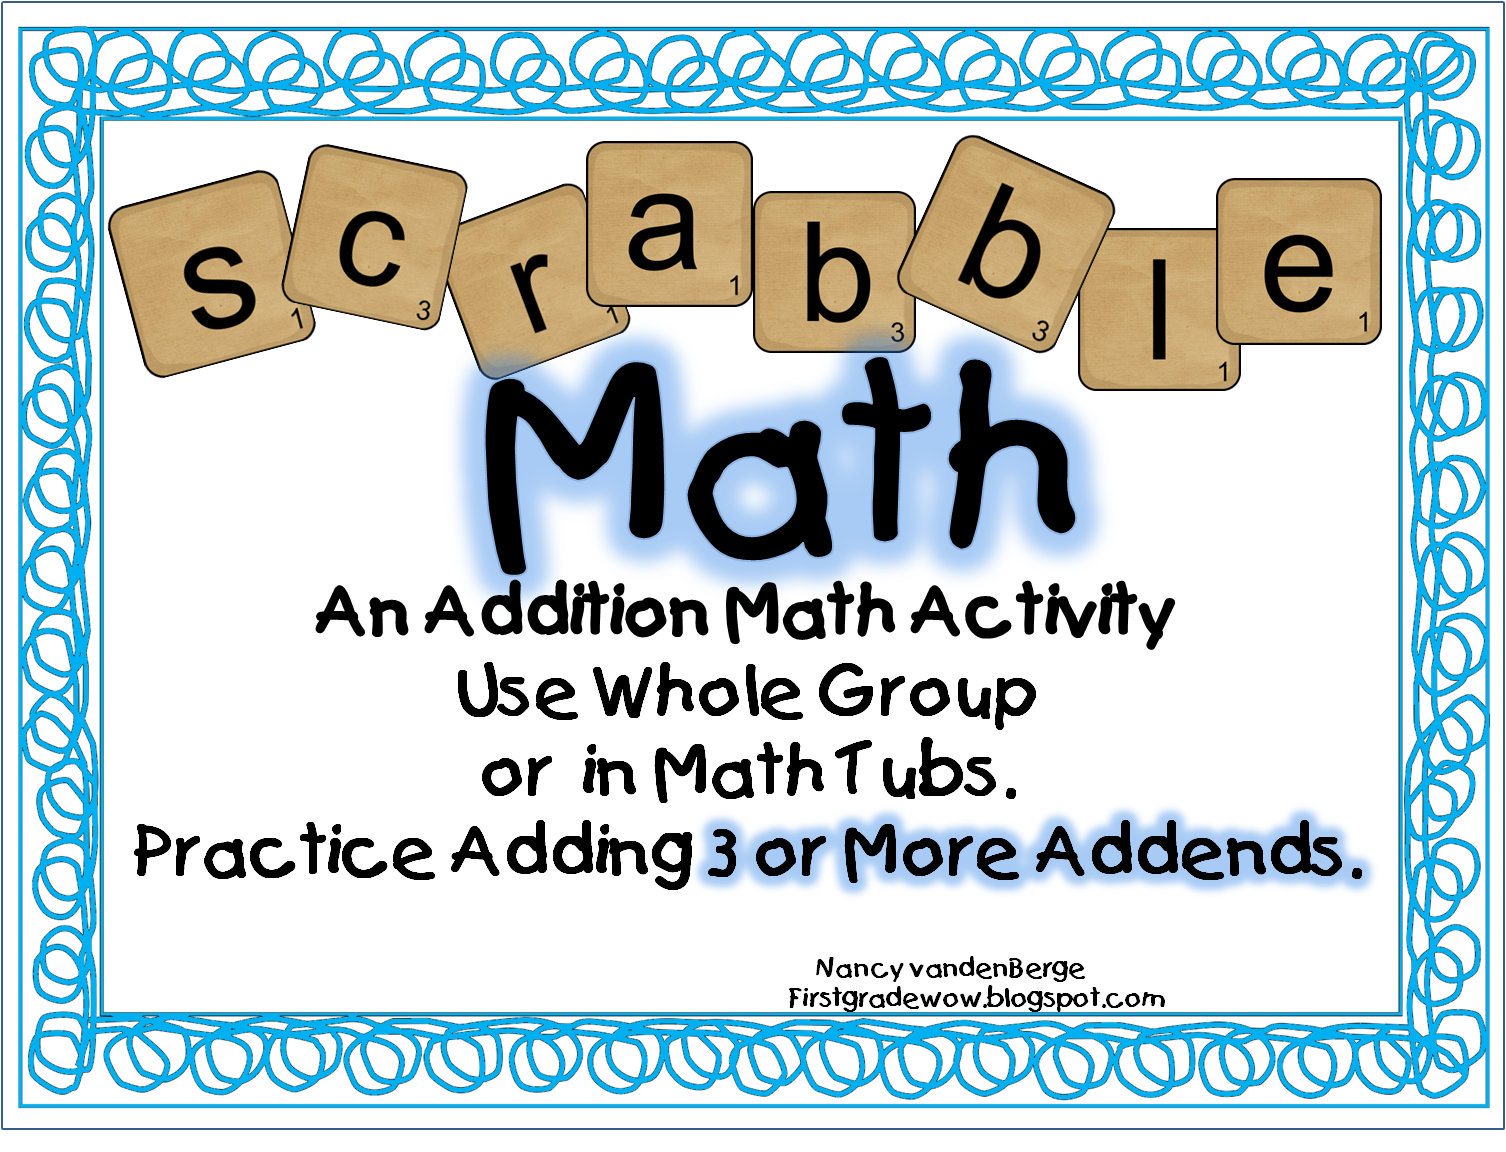 Awesome Math Activity For Adding 3 Or More Addends Free